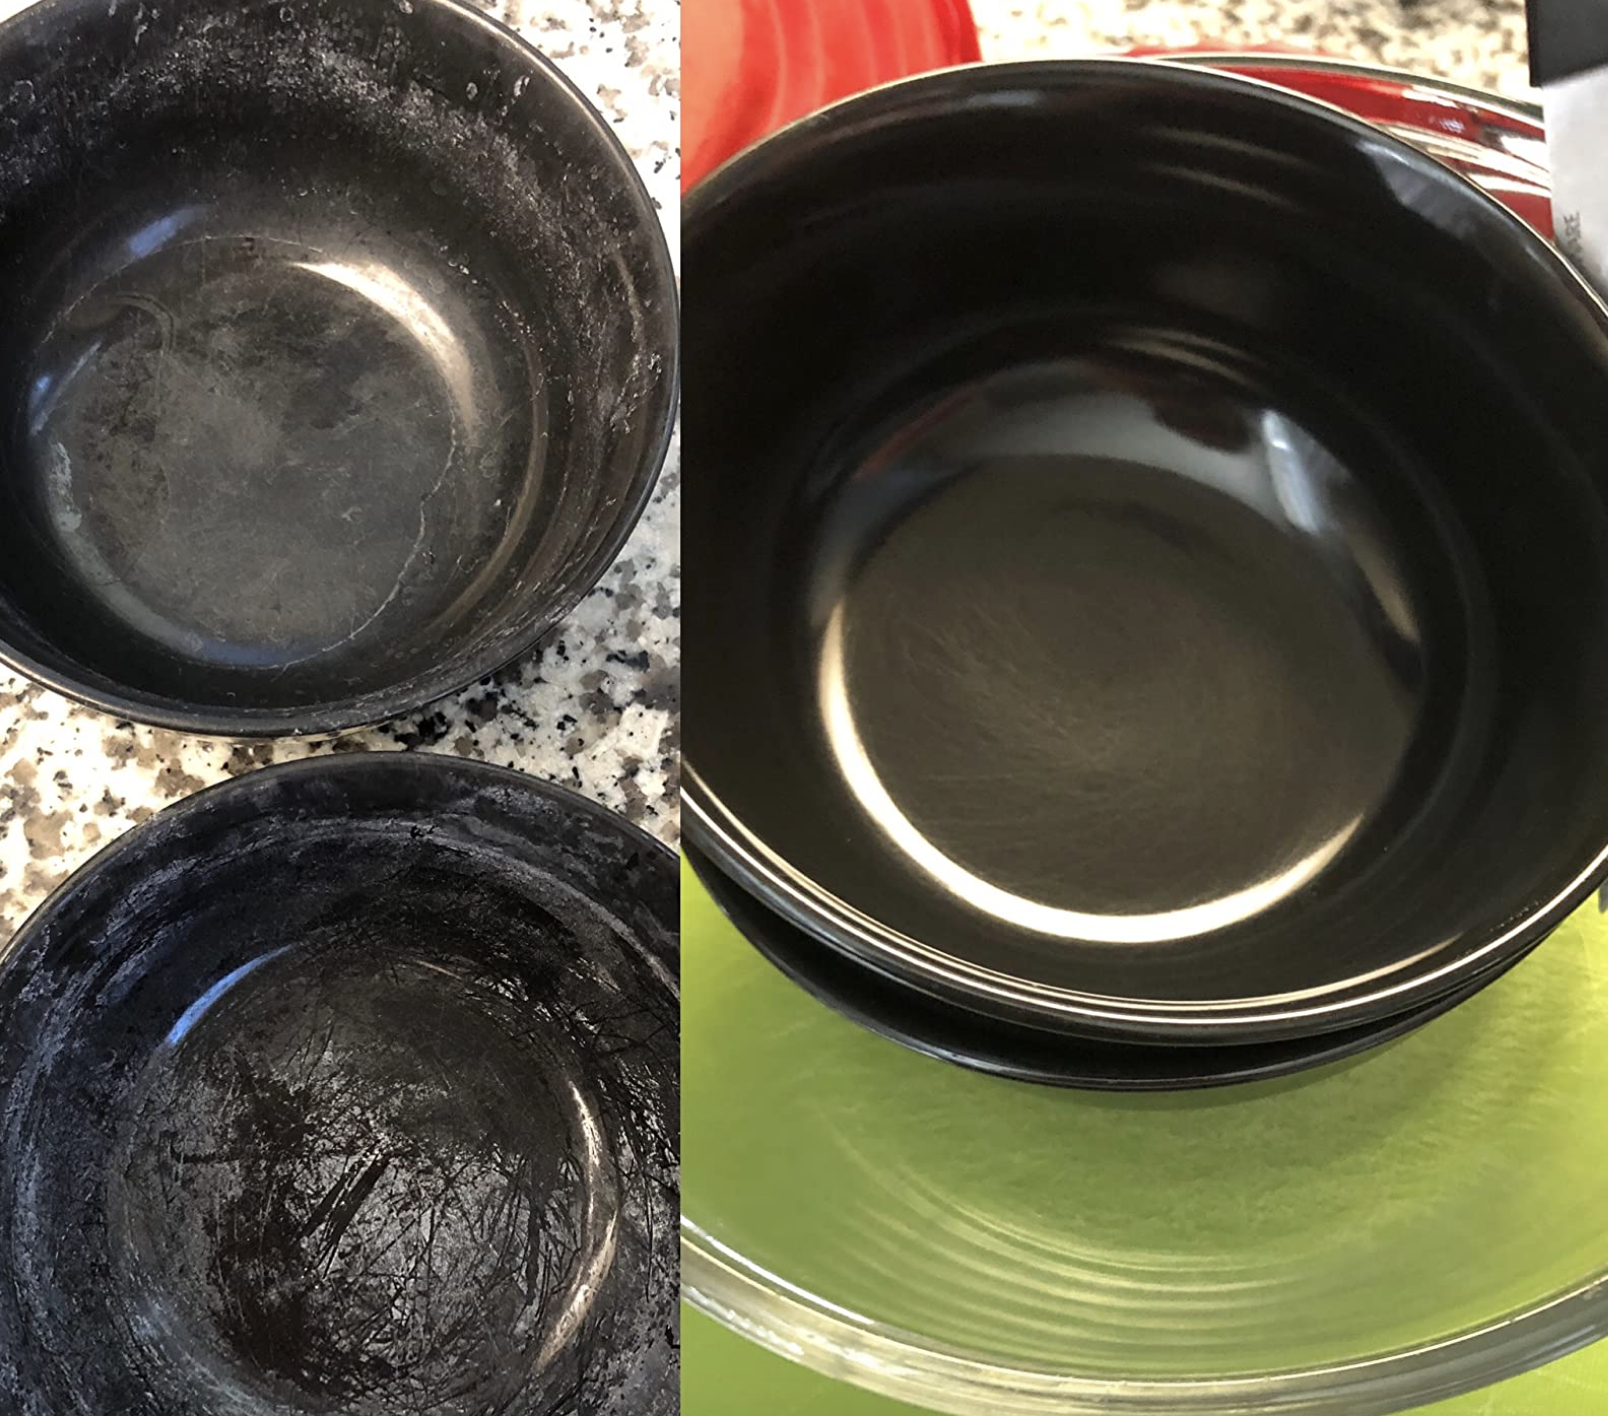 before image of bowls with hard water grime on dishes and after image showing clean bowls after ran in dishwasher with powder